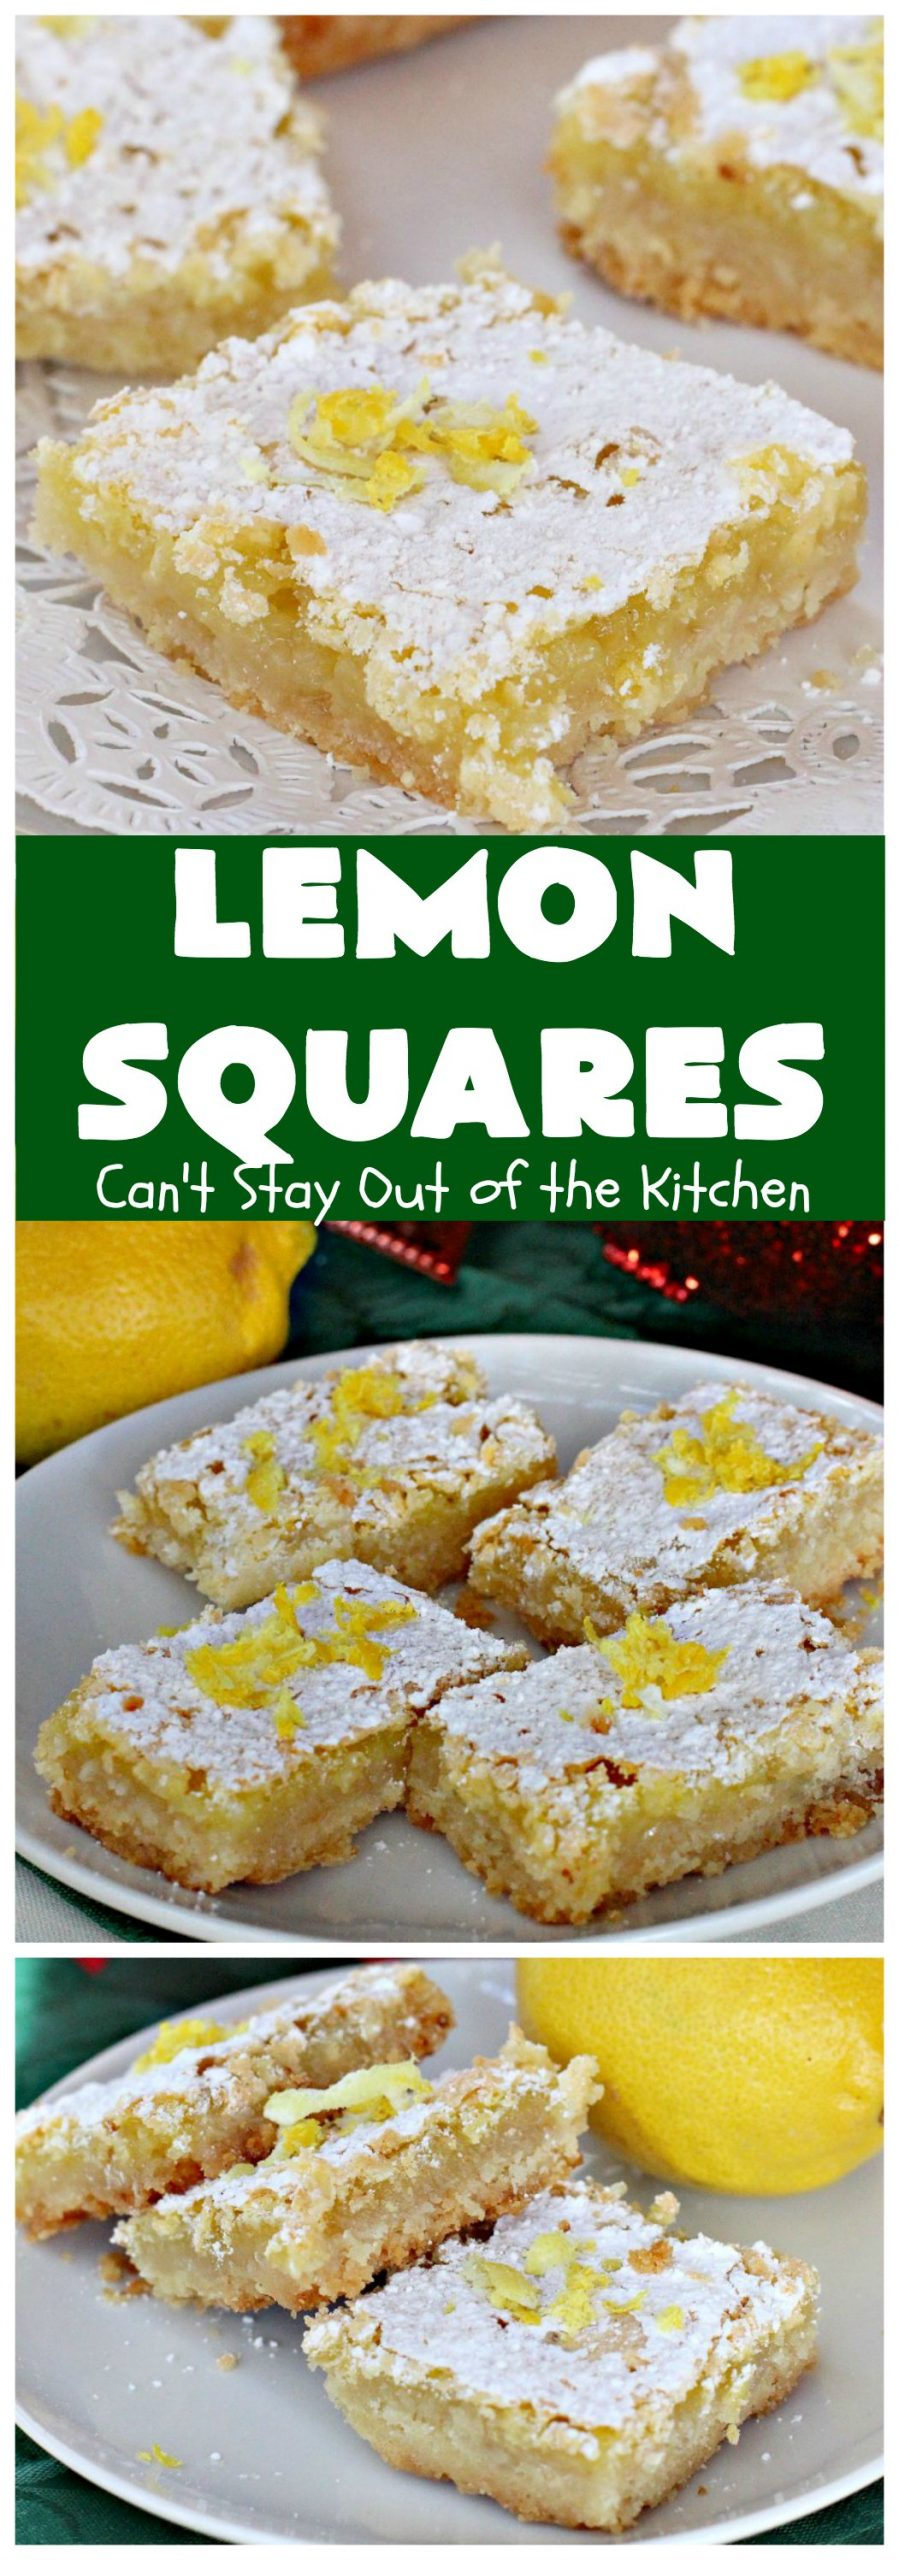 Lemon Squares   Can't Stay Out of the Kitchen